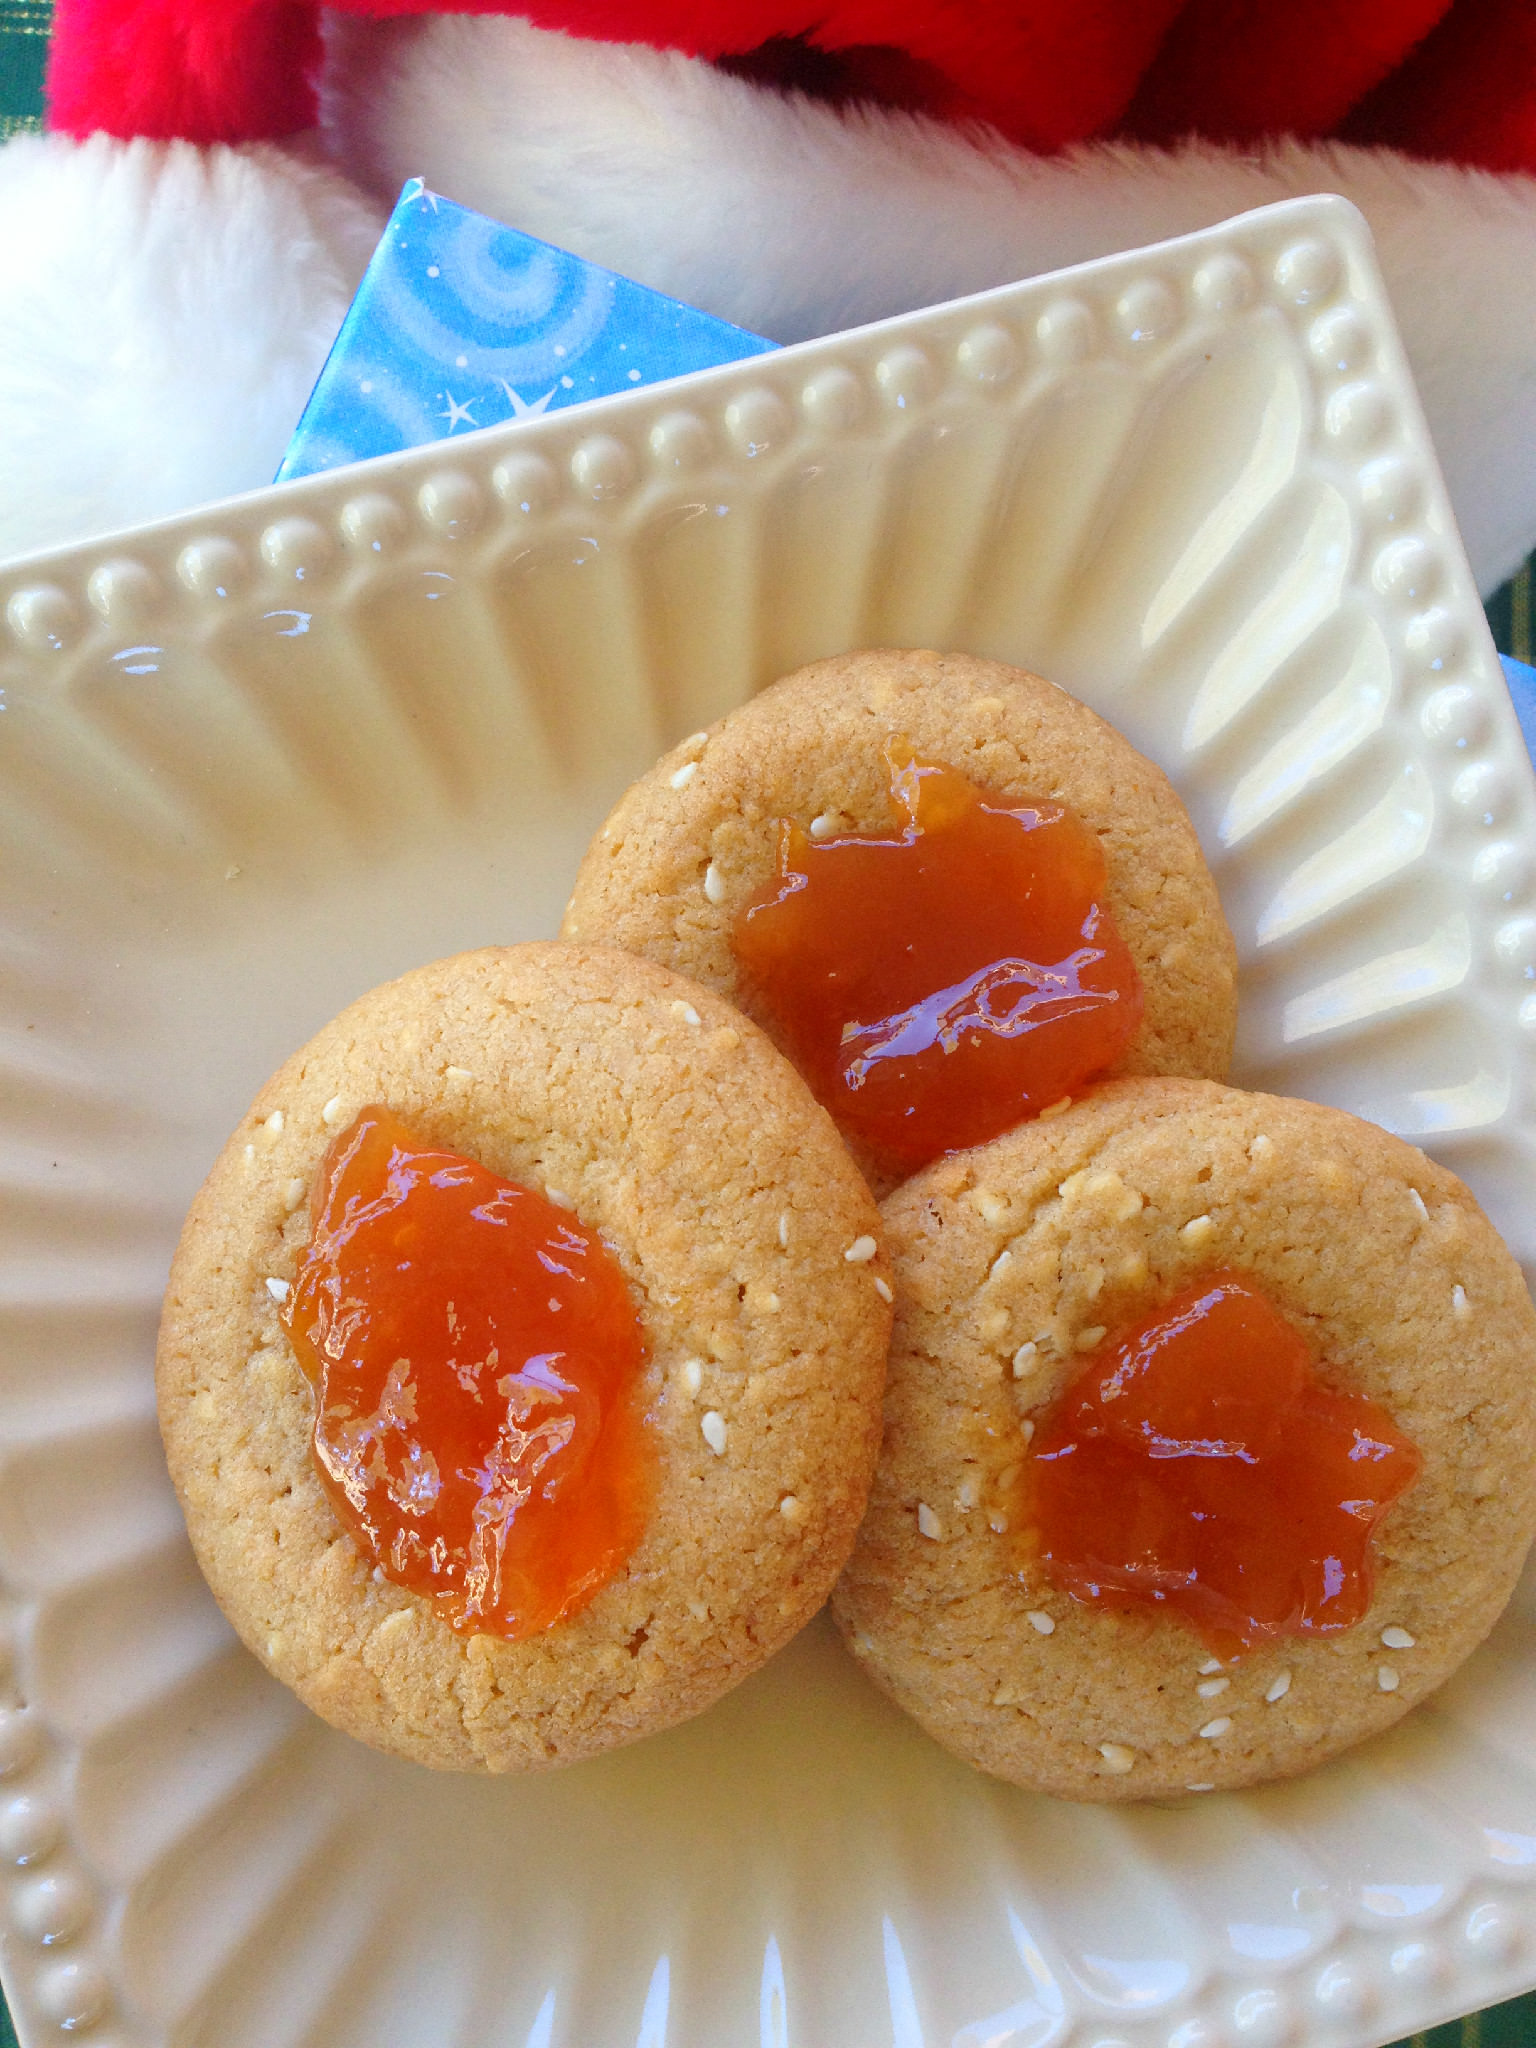 Allison's Sesame Plum Thumbprint Cookies